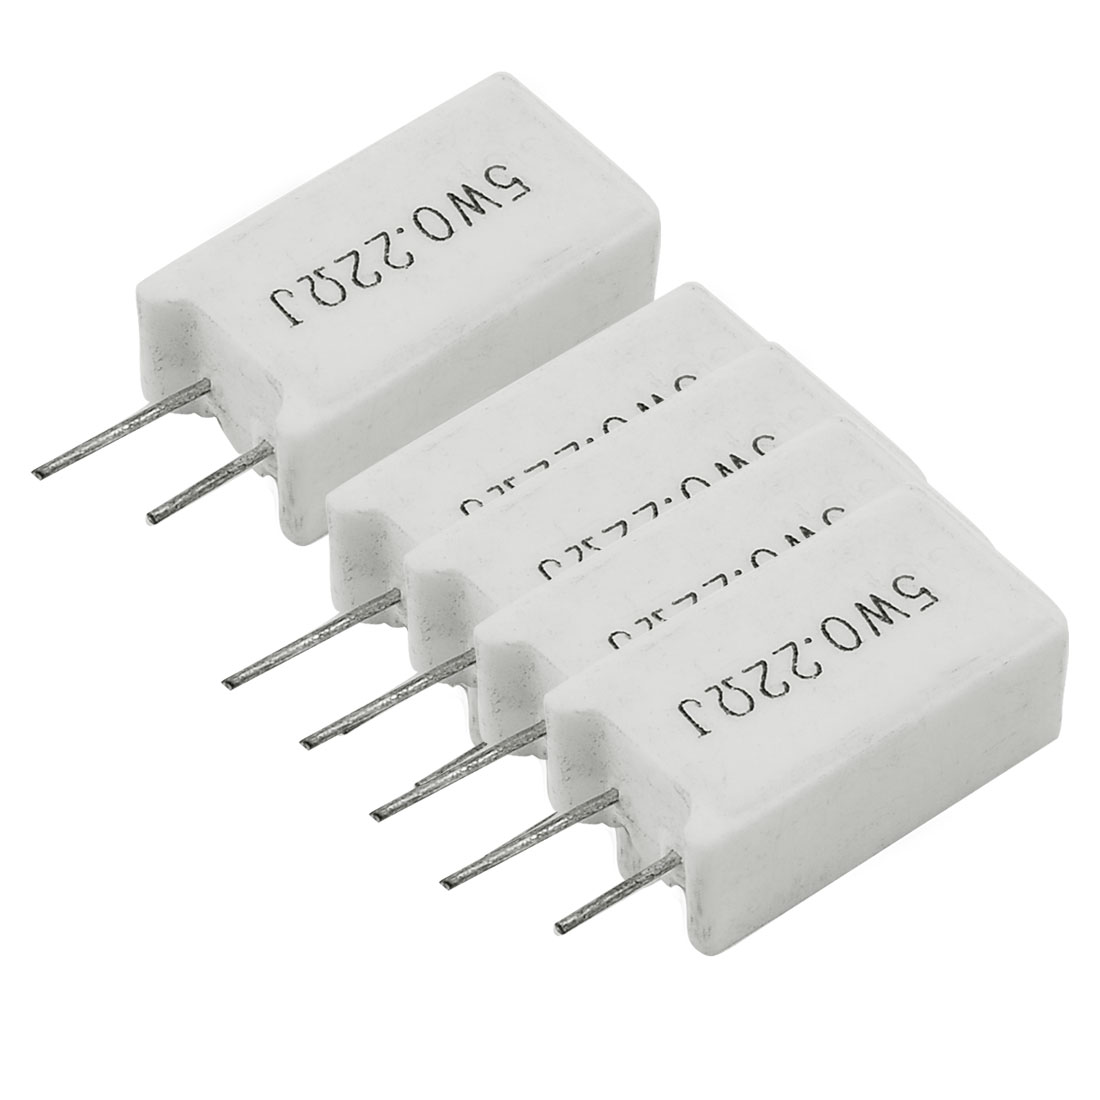 5 x 5W 0.22 Ohm 0.22R 5% Radial Lead Ceramic Cement Power Resistors White